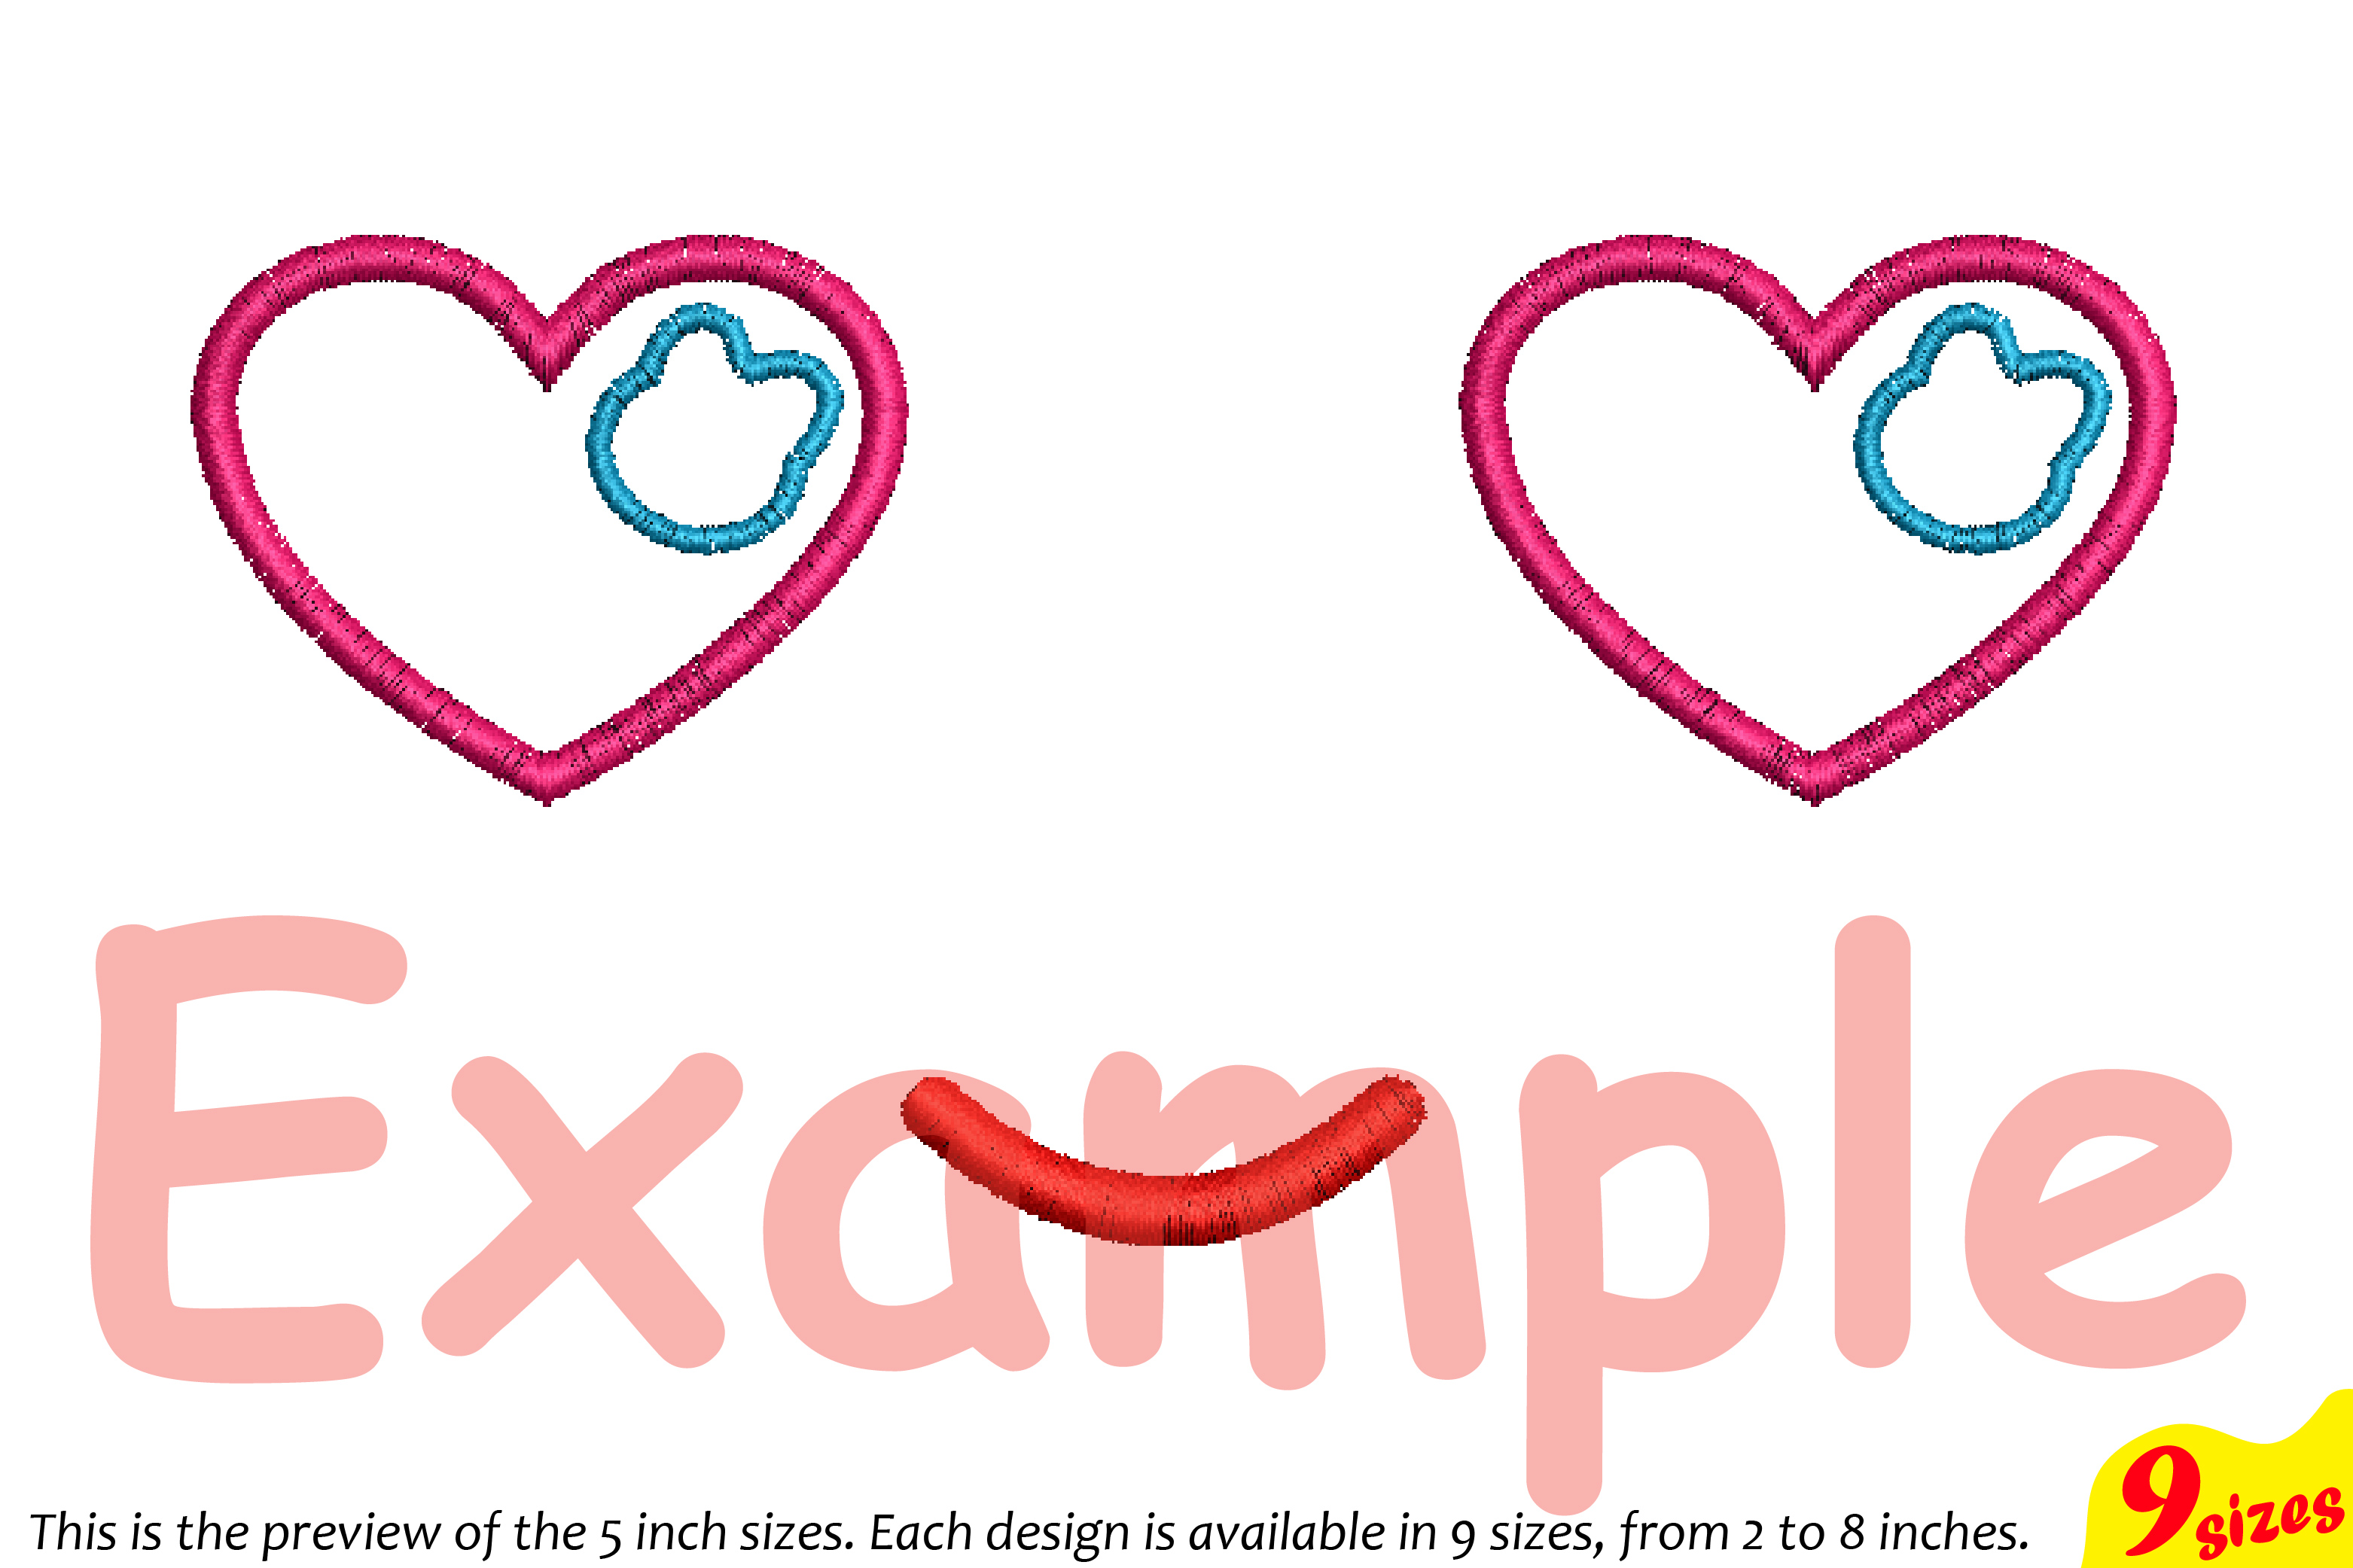 Cute Emoji Embroidery Design Machine Instant Download Commercial Use digital file icon symbol sign emoticons outline Kawaii Expression 188b example image 4